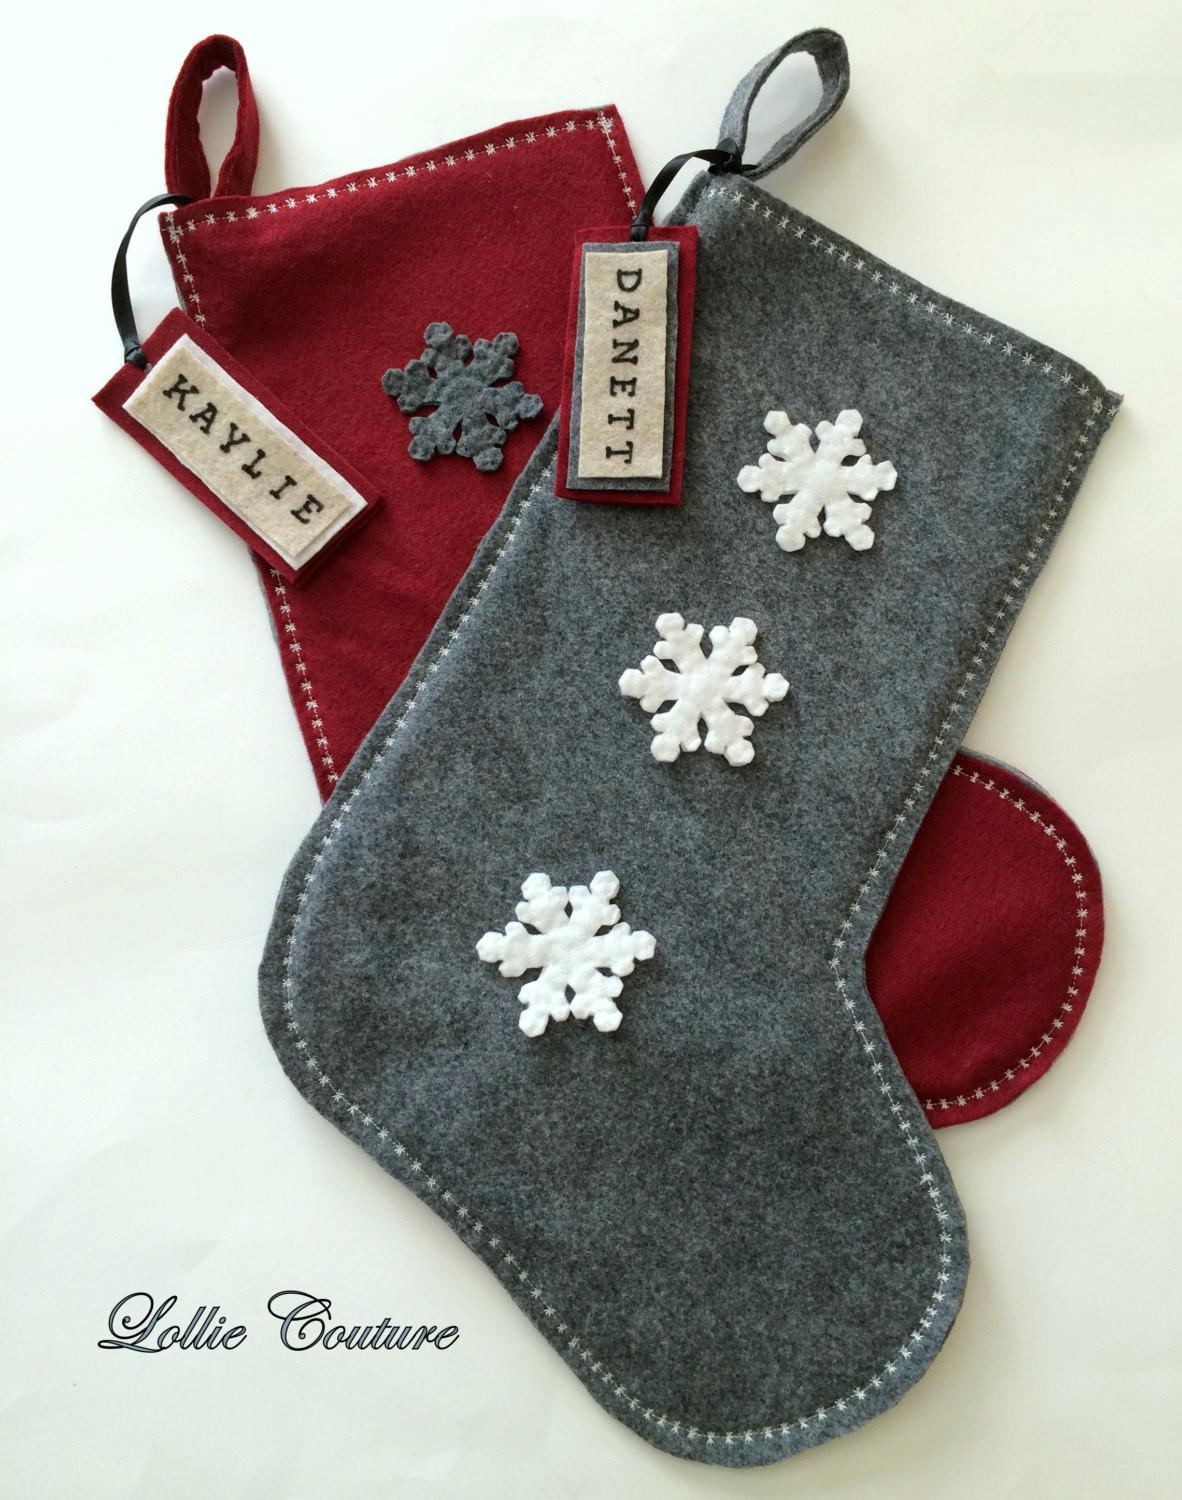 Classic Modern Wool Felt Christmas Stockings Unique